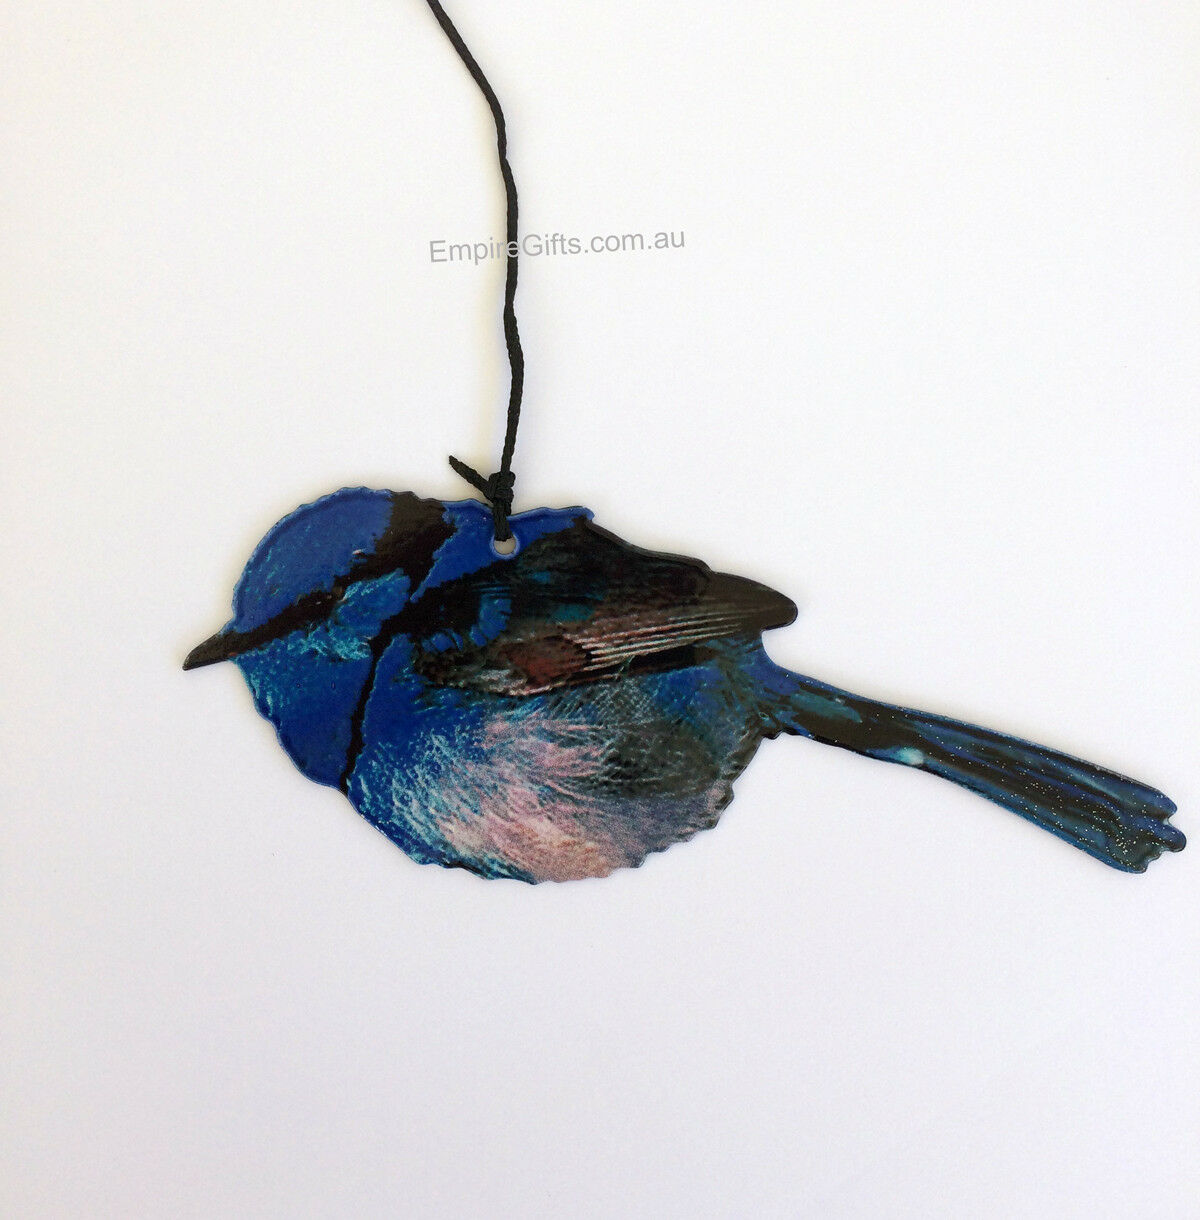 (1) 8 Blue Fairy Wren Metal Wind Chime Hanging Birds Natures Melody